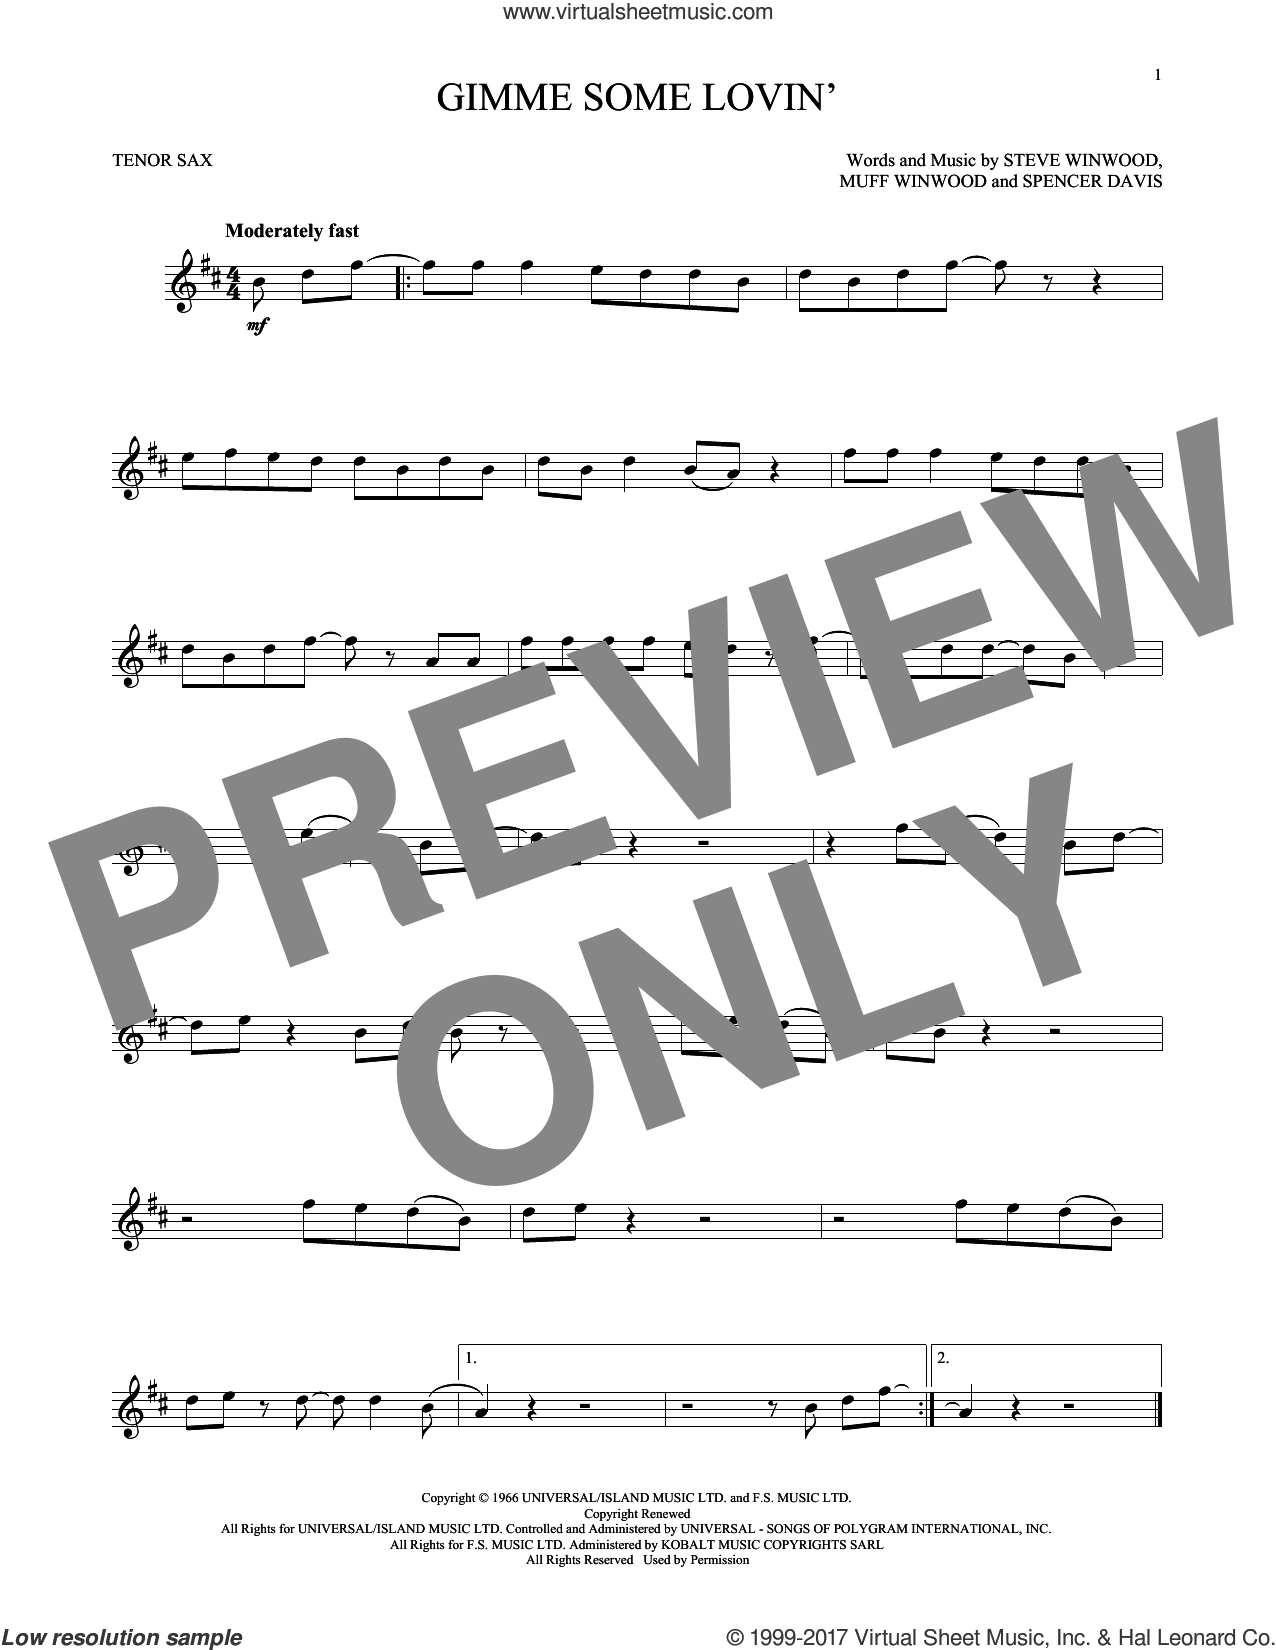 Gimme Some Lovin' sheet music for tenor saxophone solo by The Spencer Davis Group, Muff Winwood, Spencer Davis and Steve Winwood, intermediate skill level